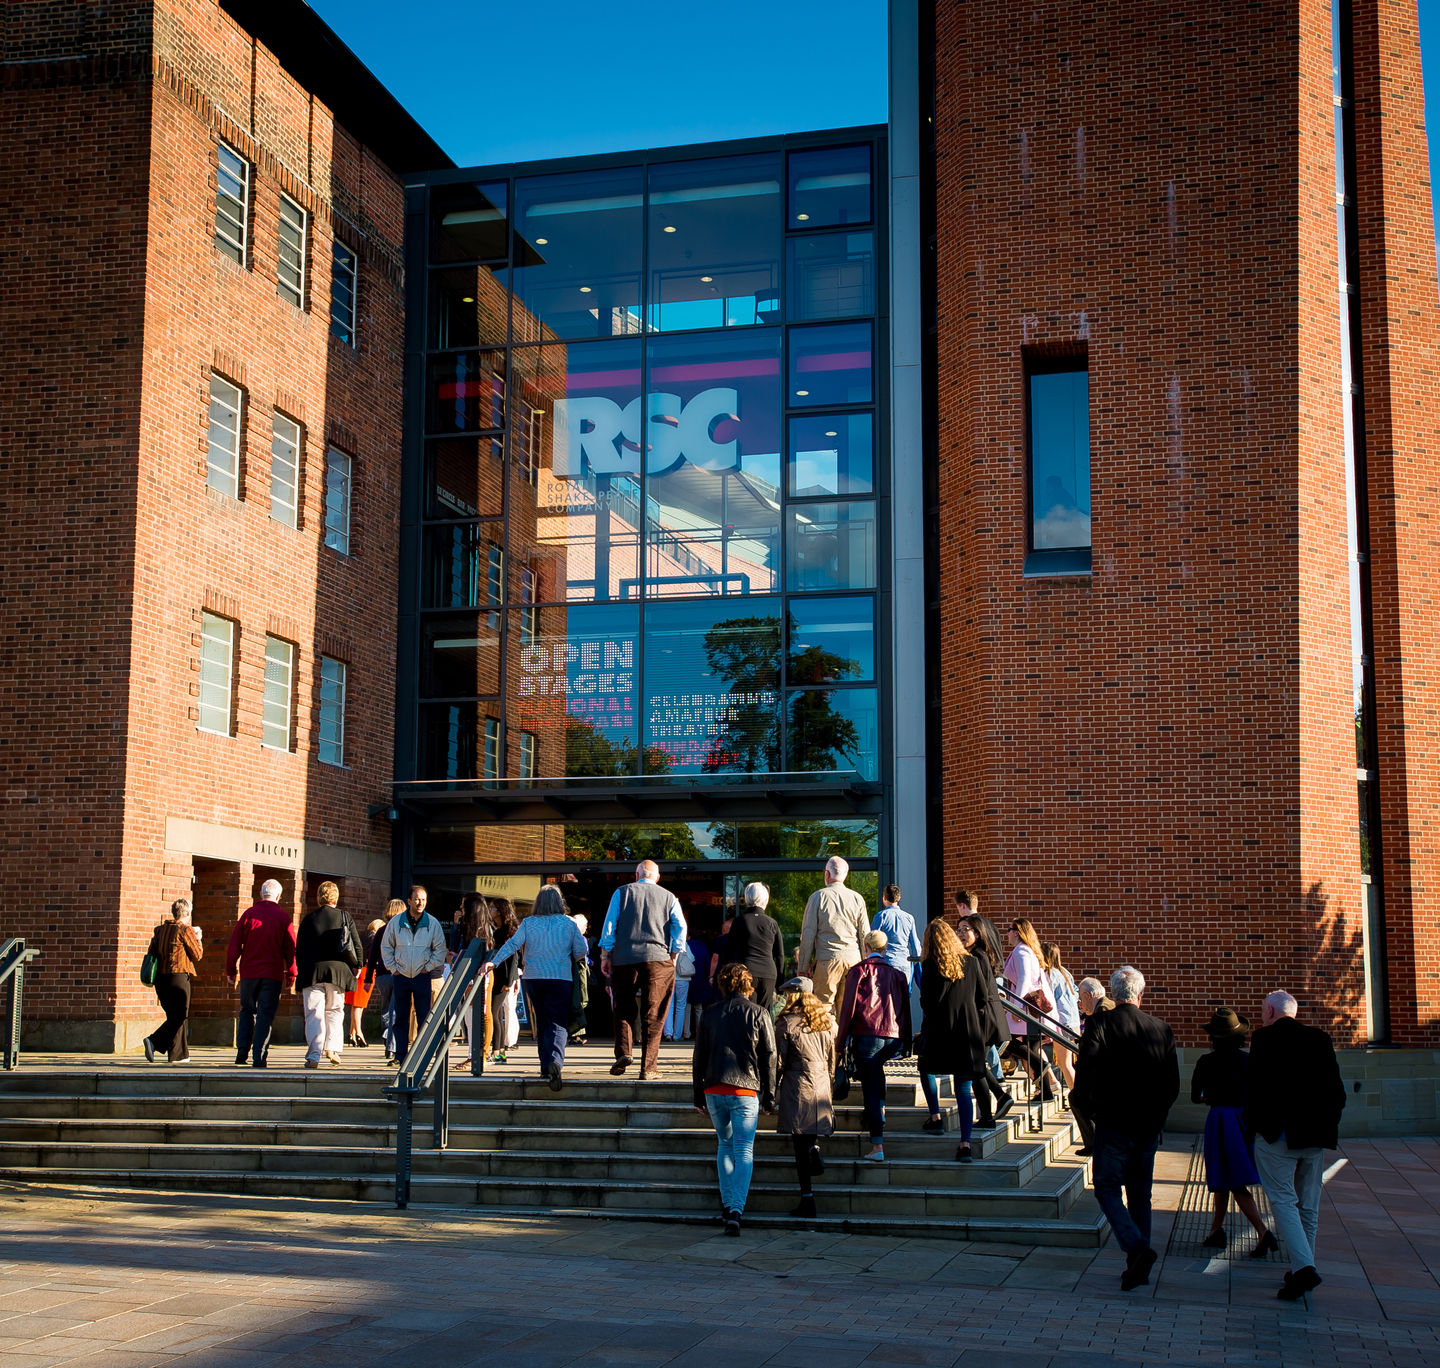 the outside of the RSC on a busy, sunny day with people going in and out